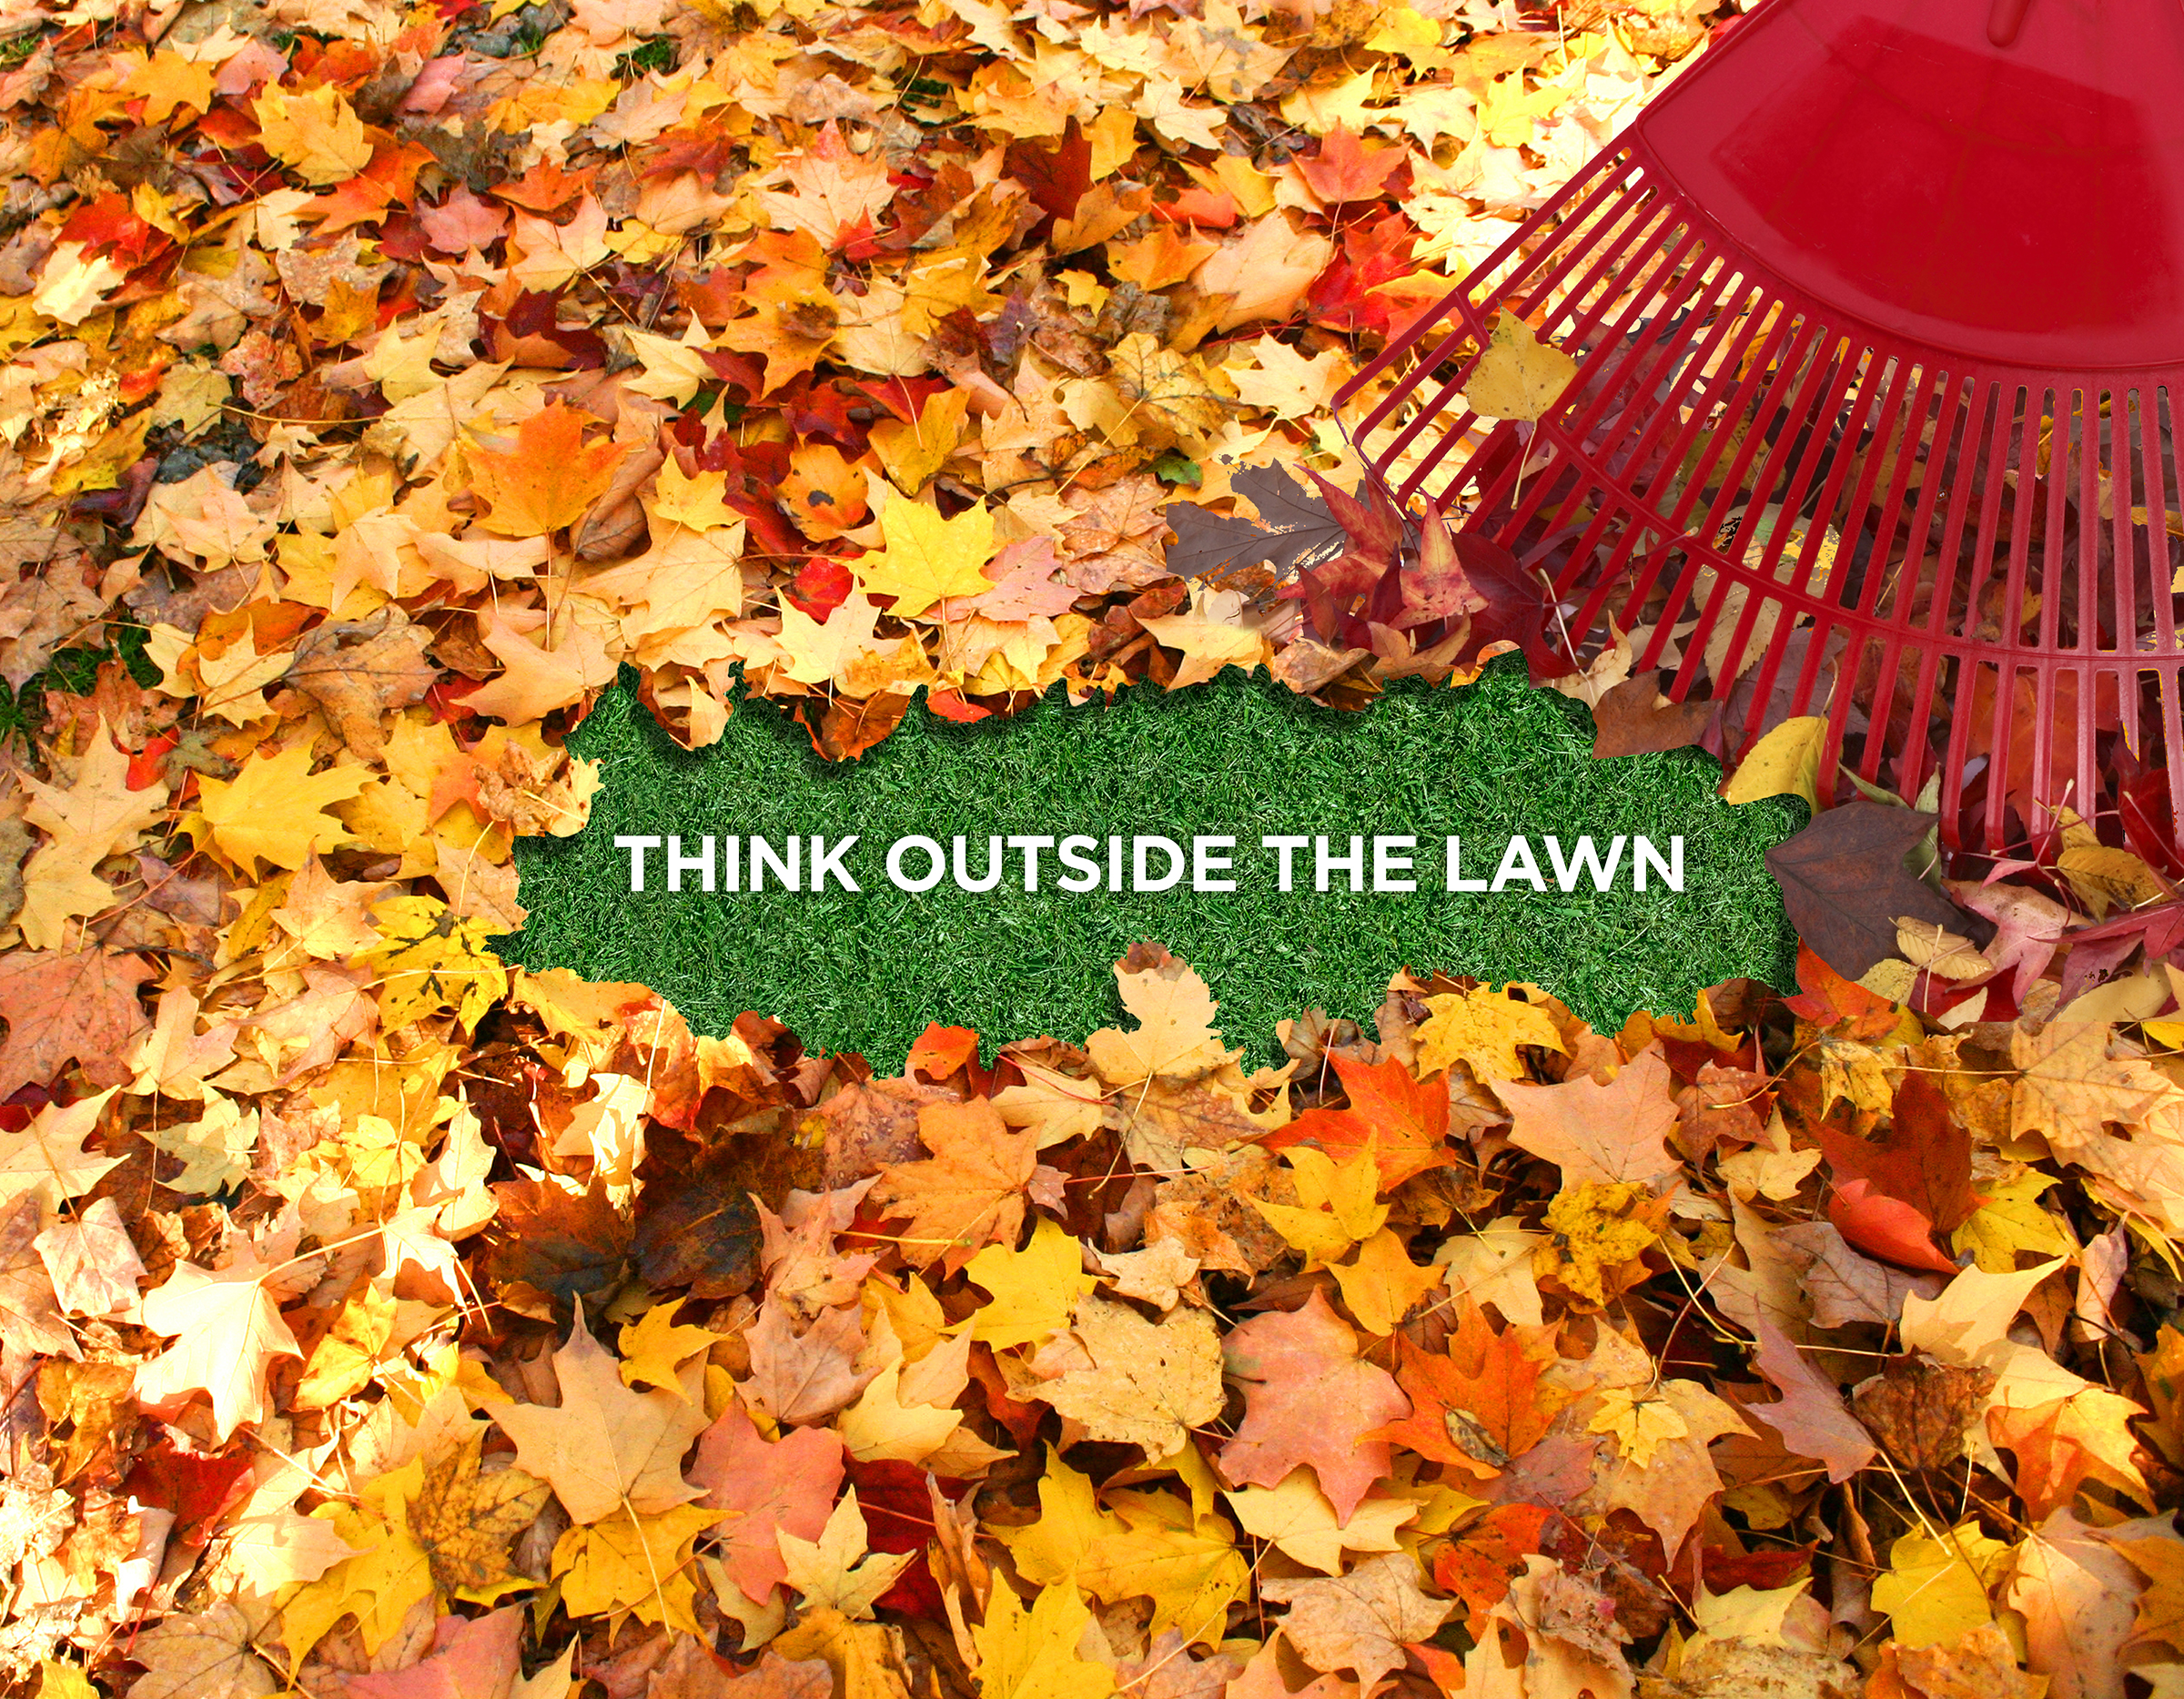 Leaves in Yard - Think Outside the Lawn